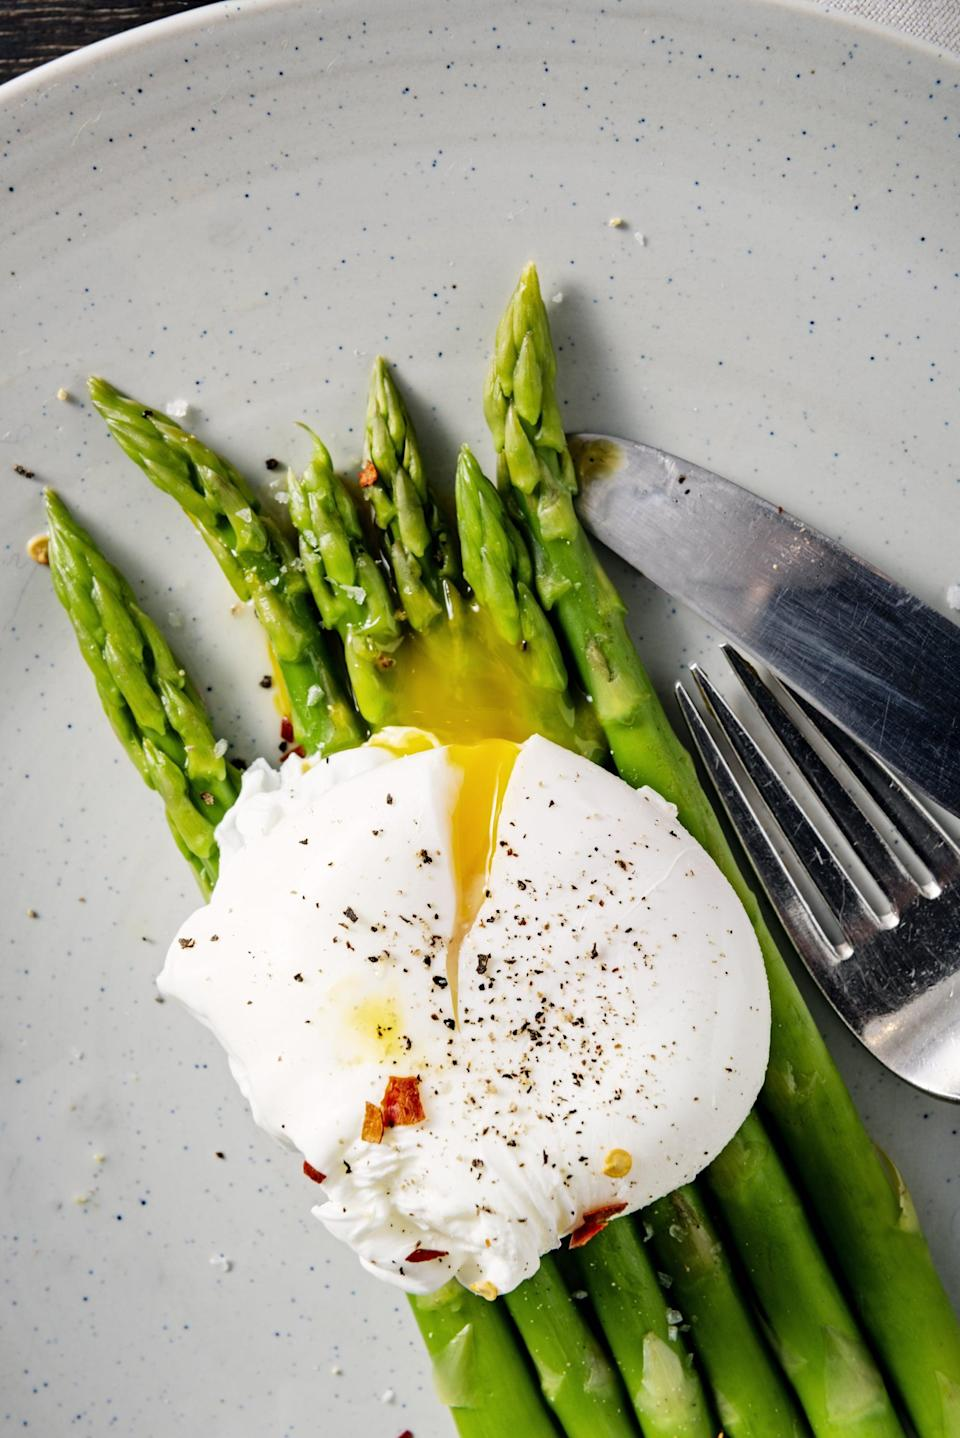 <p>There are plenty of choices beyond beef and poultry, including foods like seafood, eggs, beans, peas, lentils, legumes, nuts, seeds, and soy products. Beans, peas, and lentils fall into the vegetable category, too - so, you can knock out two food groups for the price of one.</p>